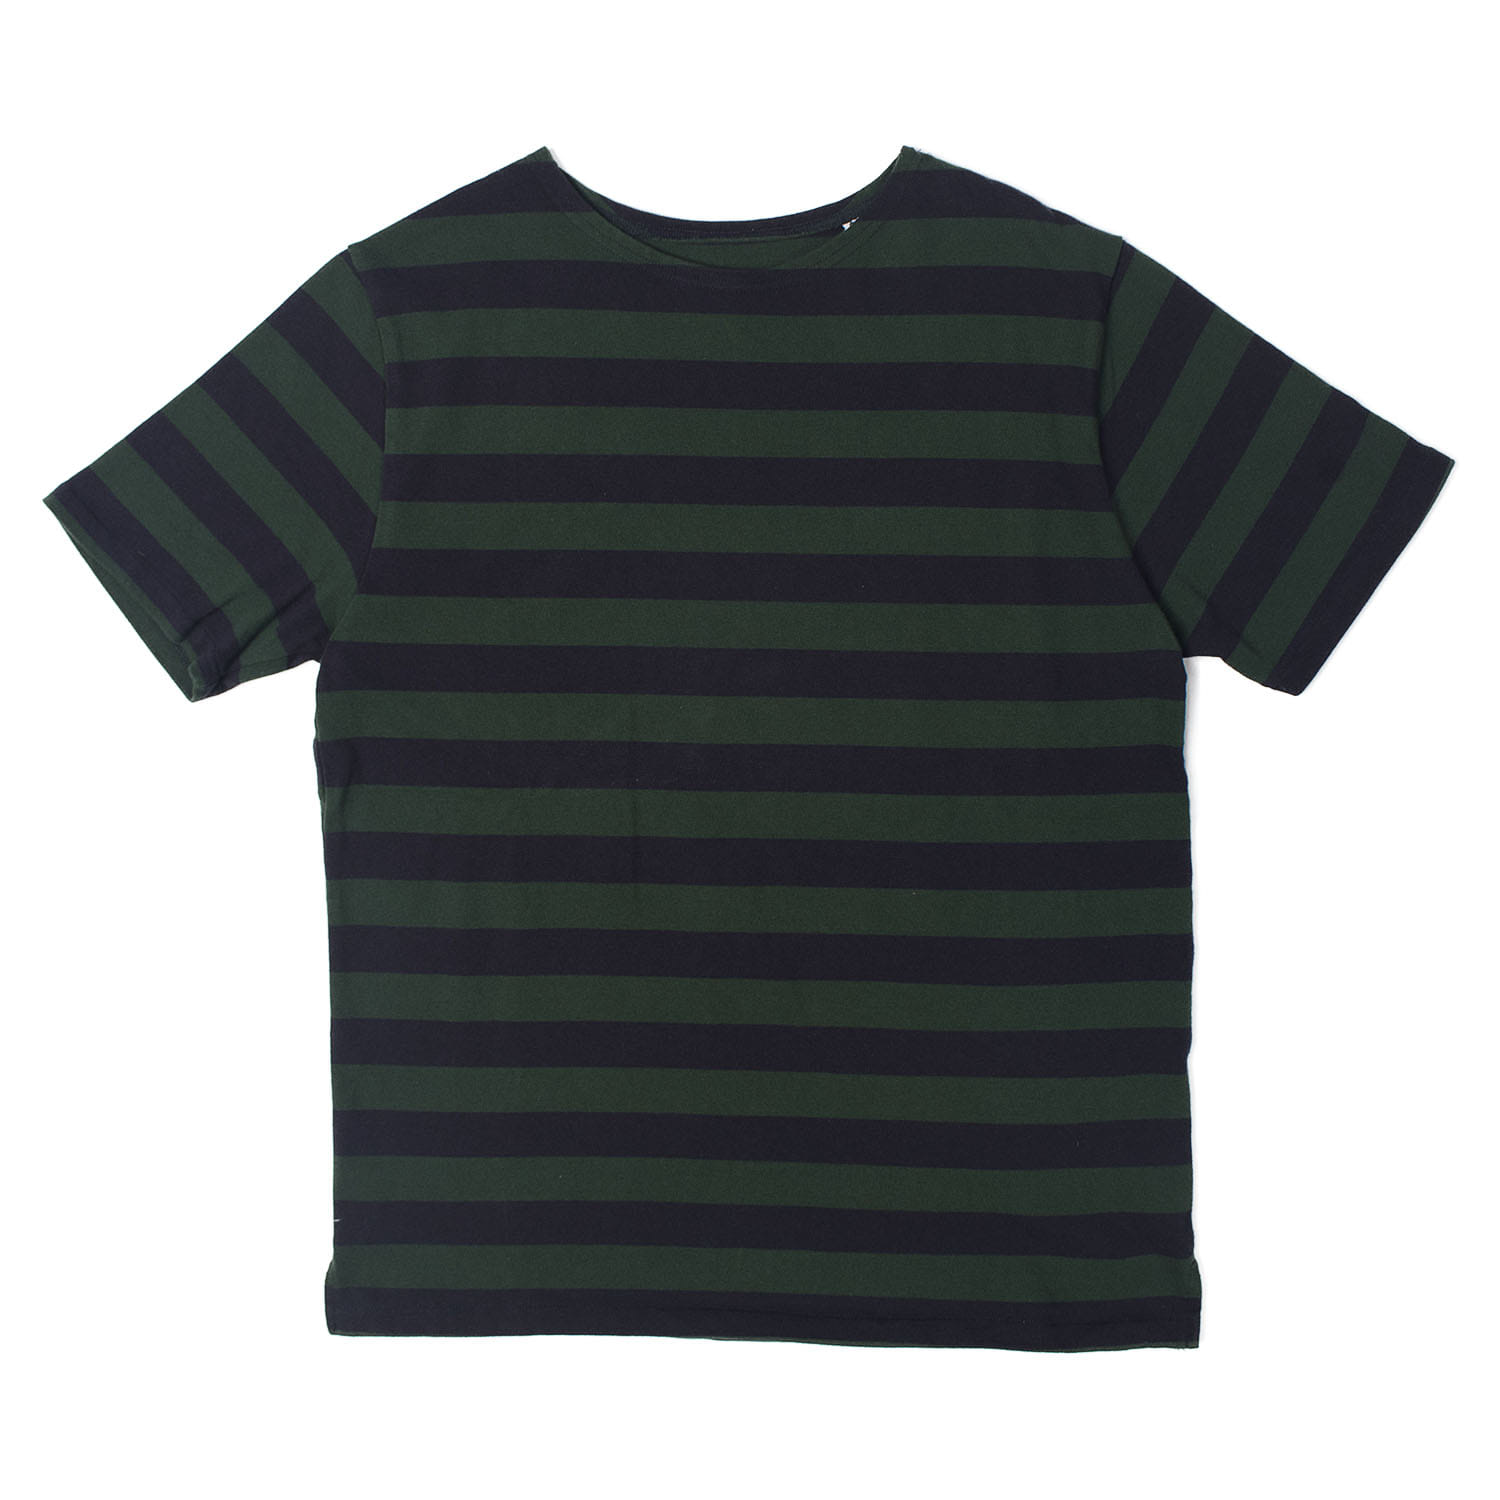 2.5 Border Boat Neck S-Sleeve (Green / Nay)